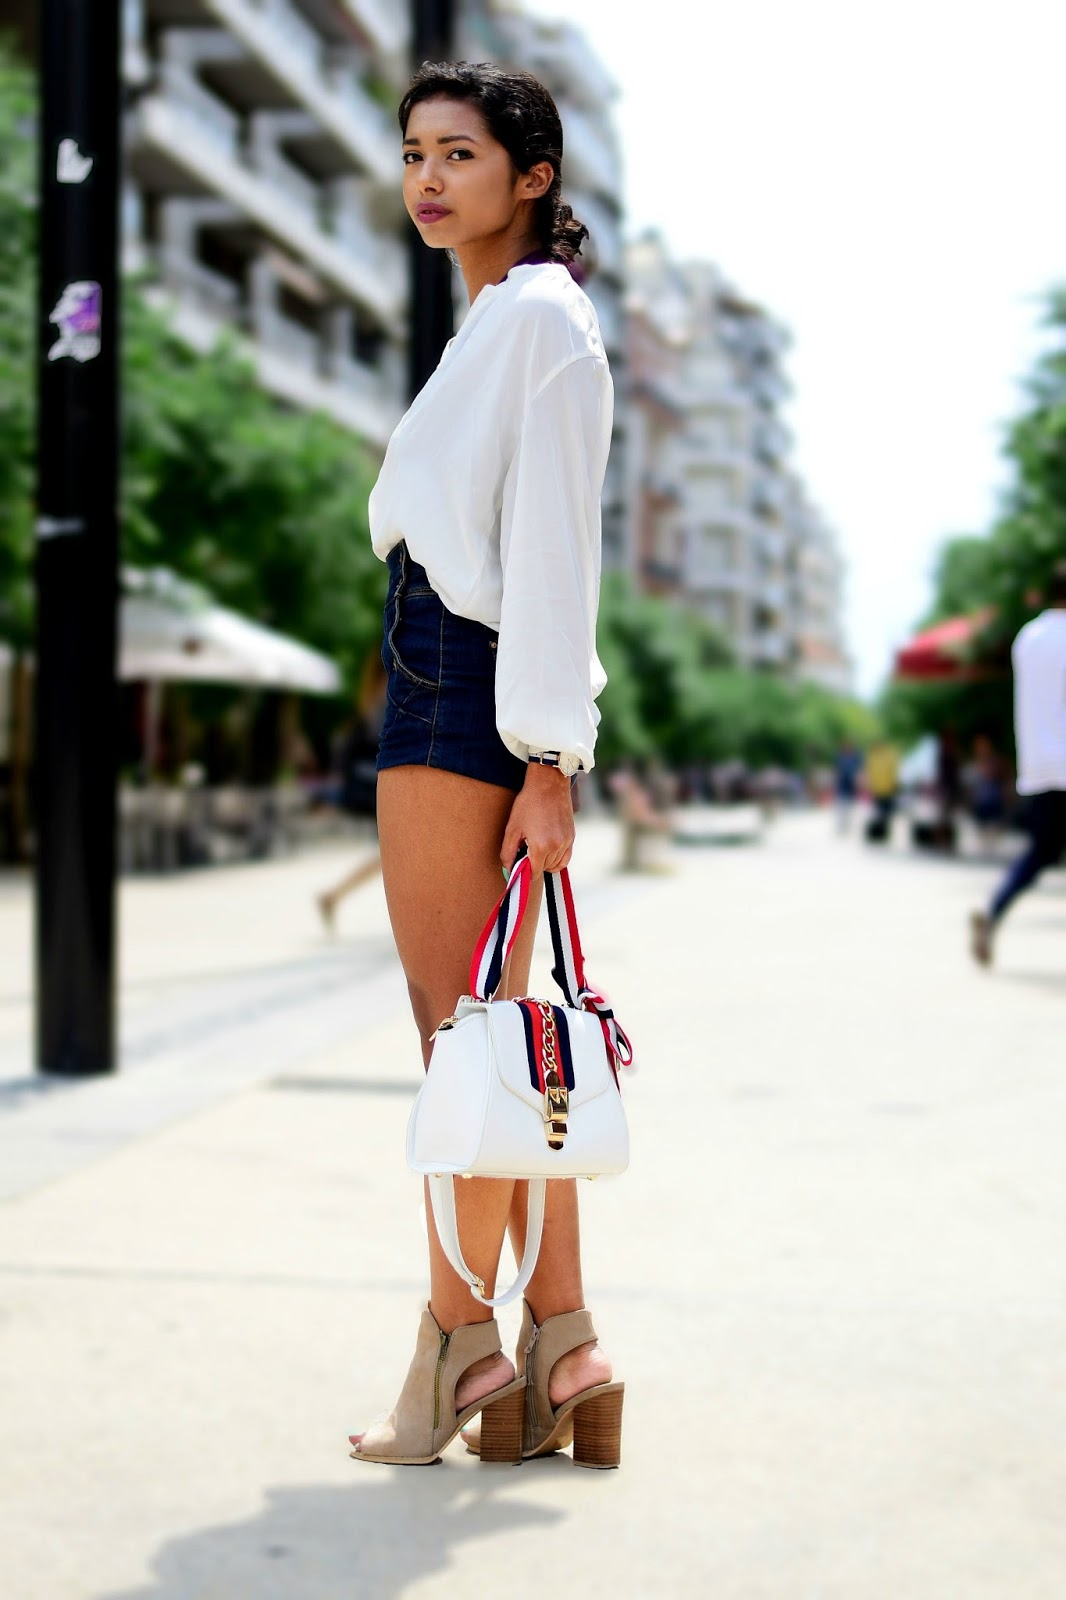 navy look outfit inspiration for summer